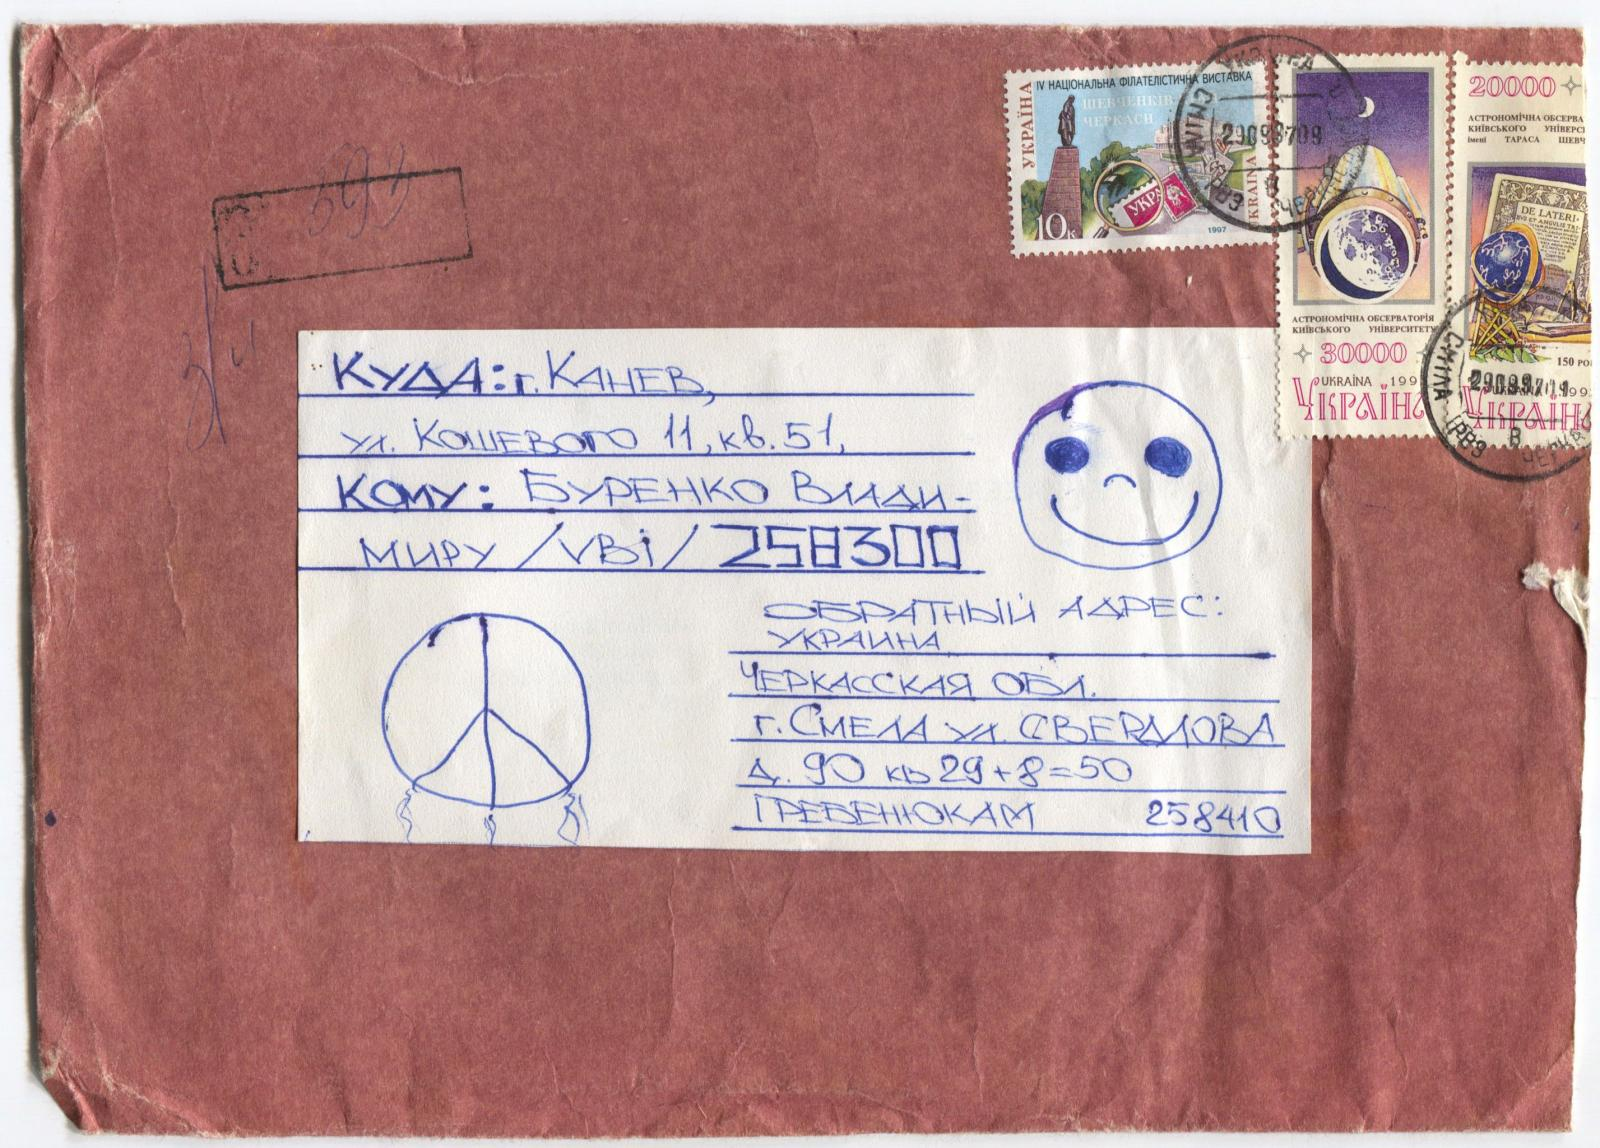 http://zxaaa.net/store/images/epson_to_vbi_19970929_0envelope.jpg